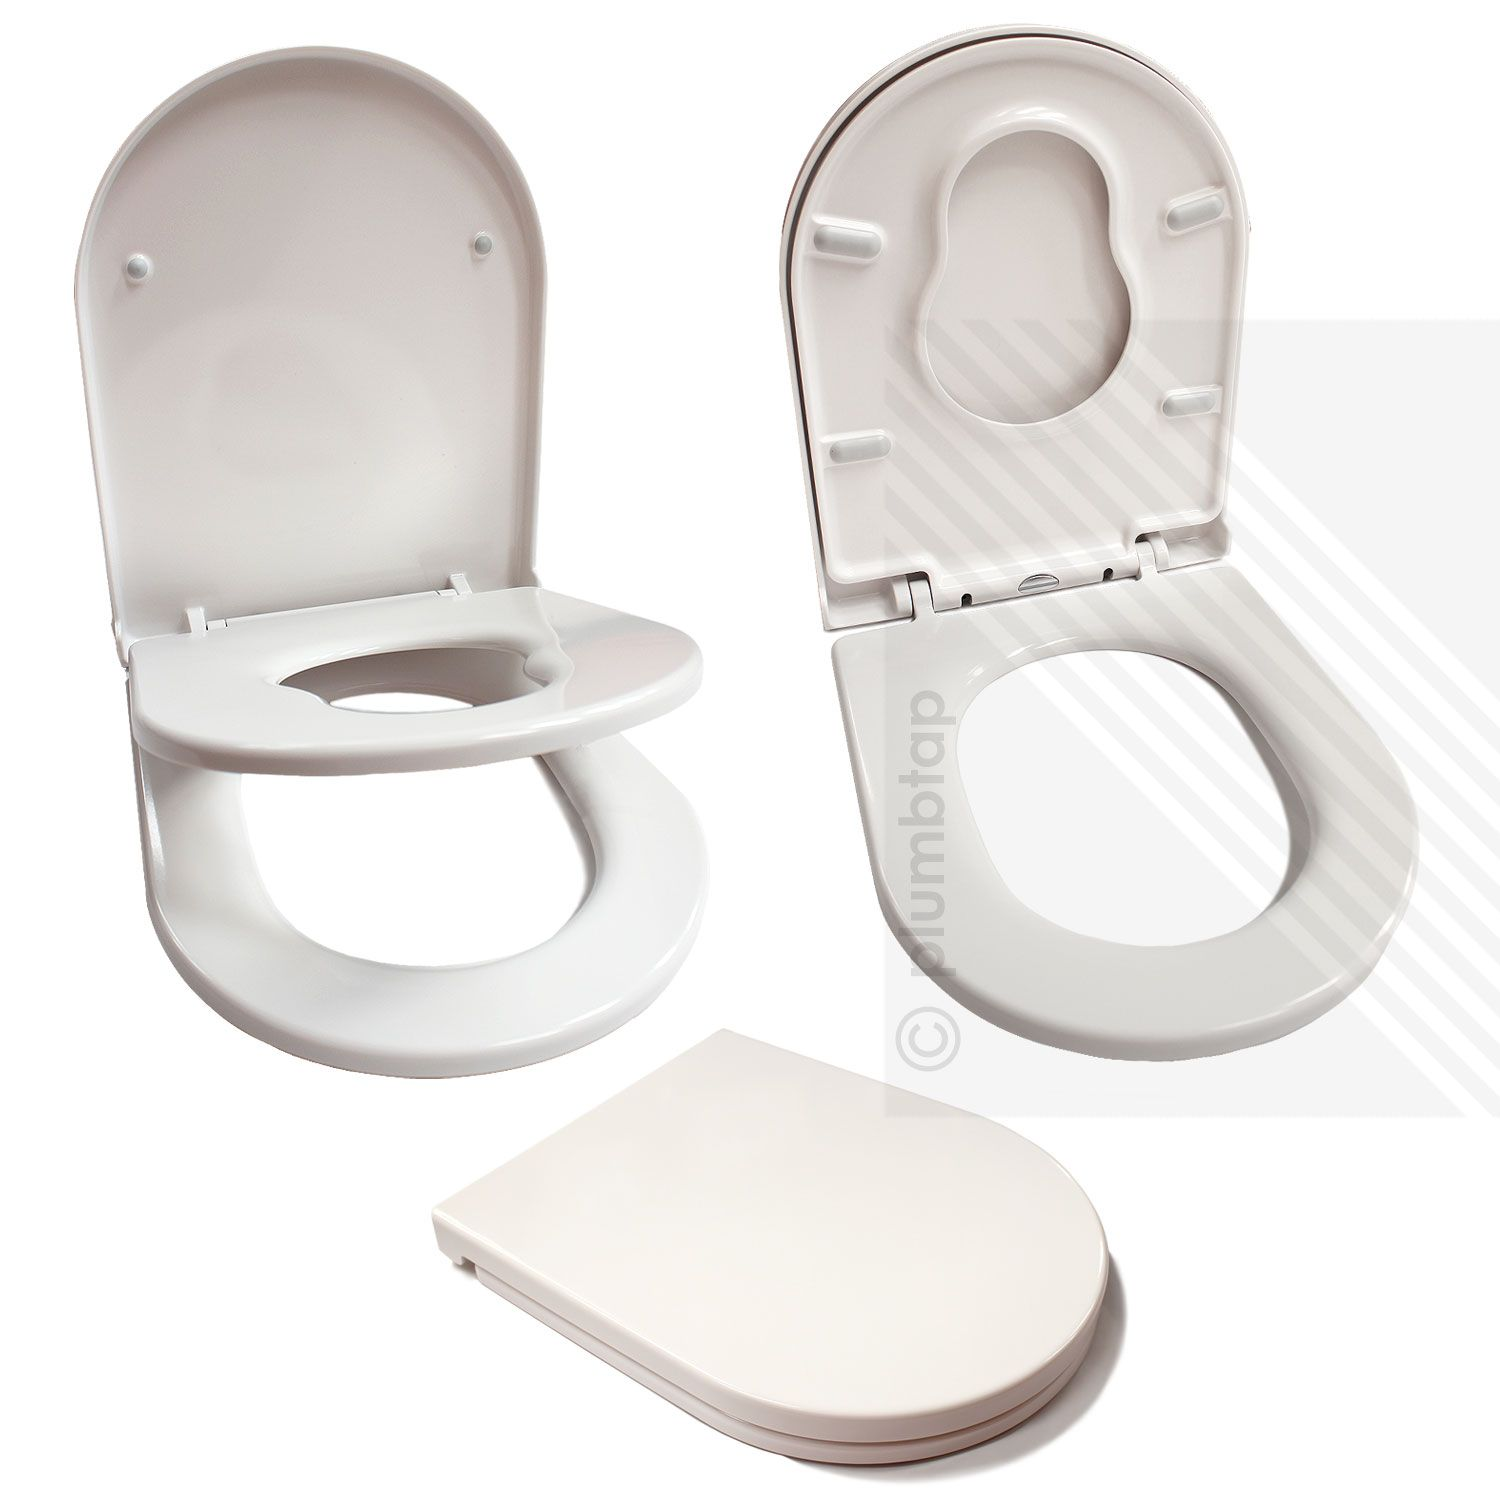 Glamorous Small D Shaped Toilet Seat Pictures Ideas